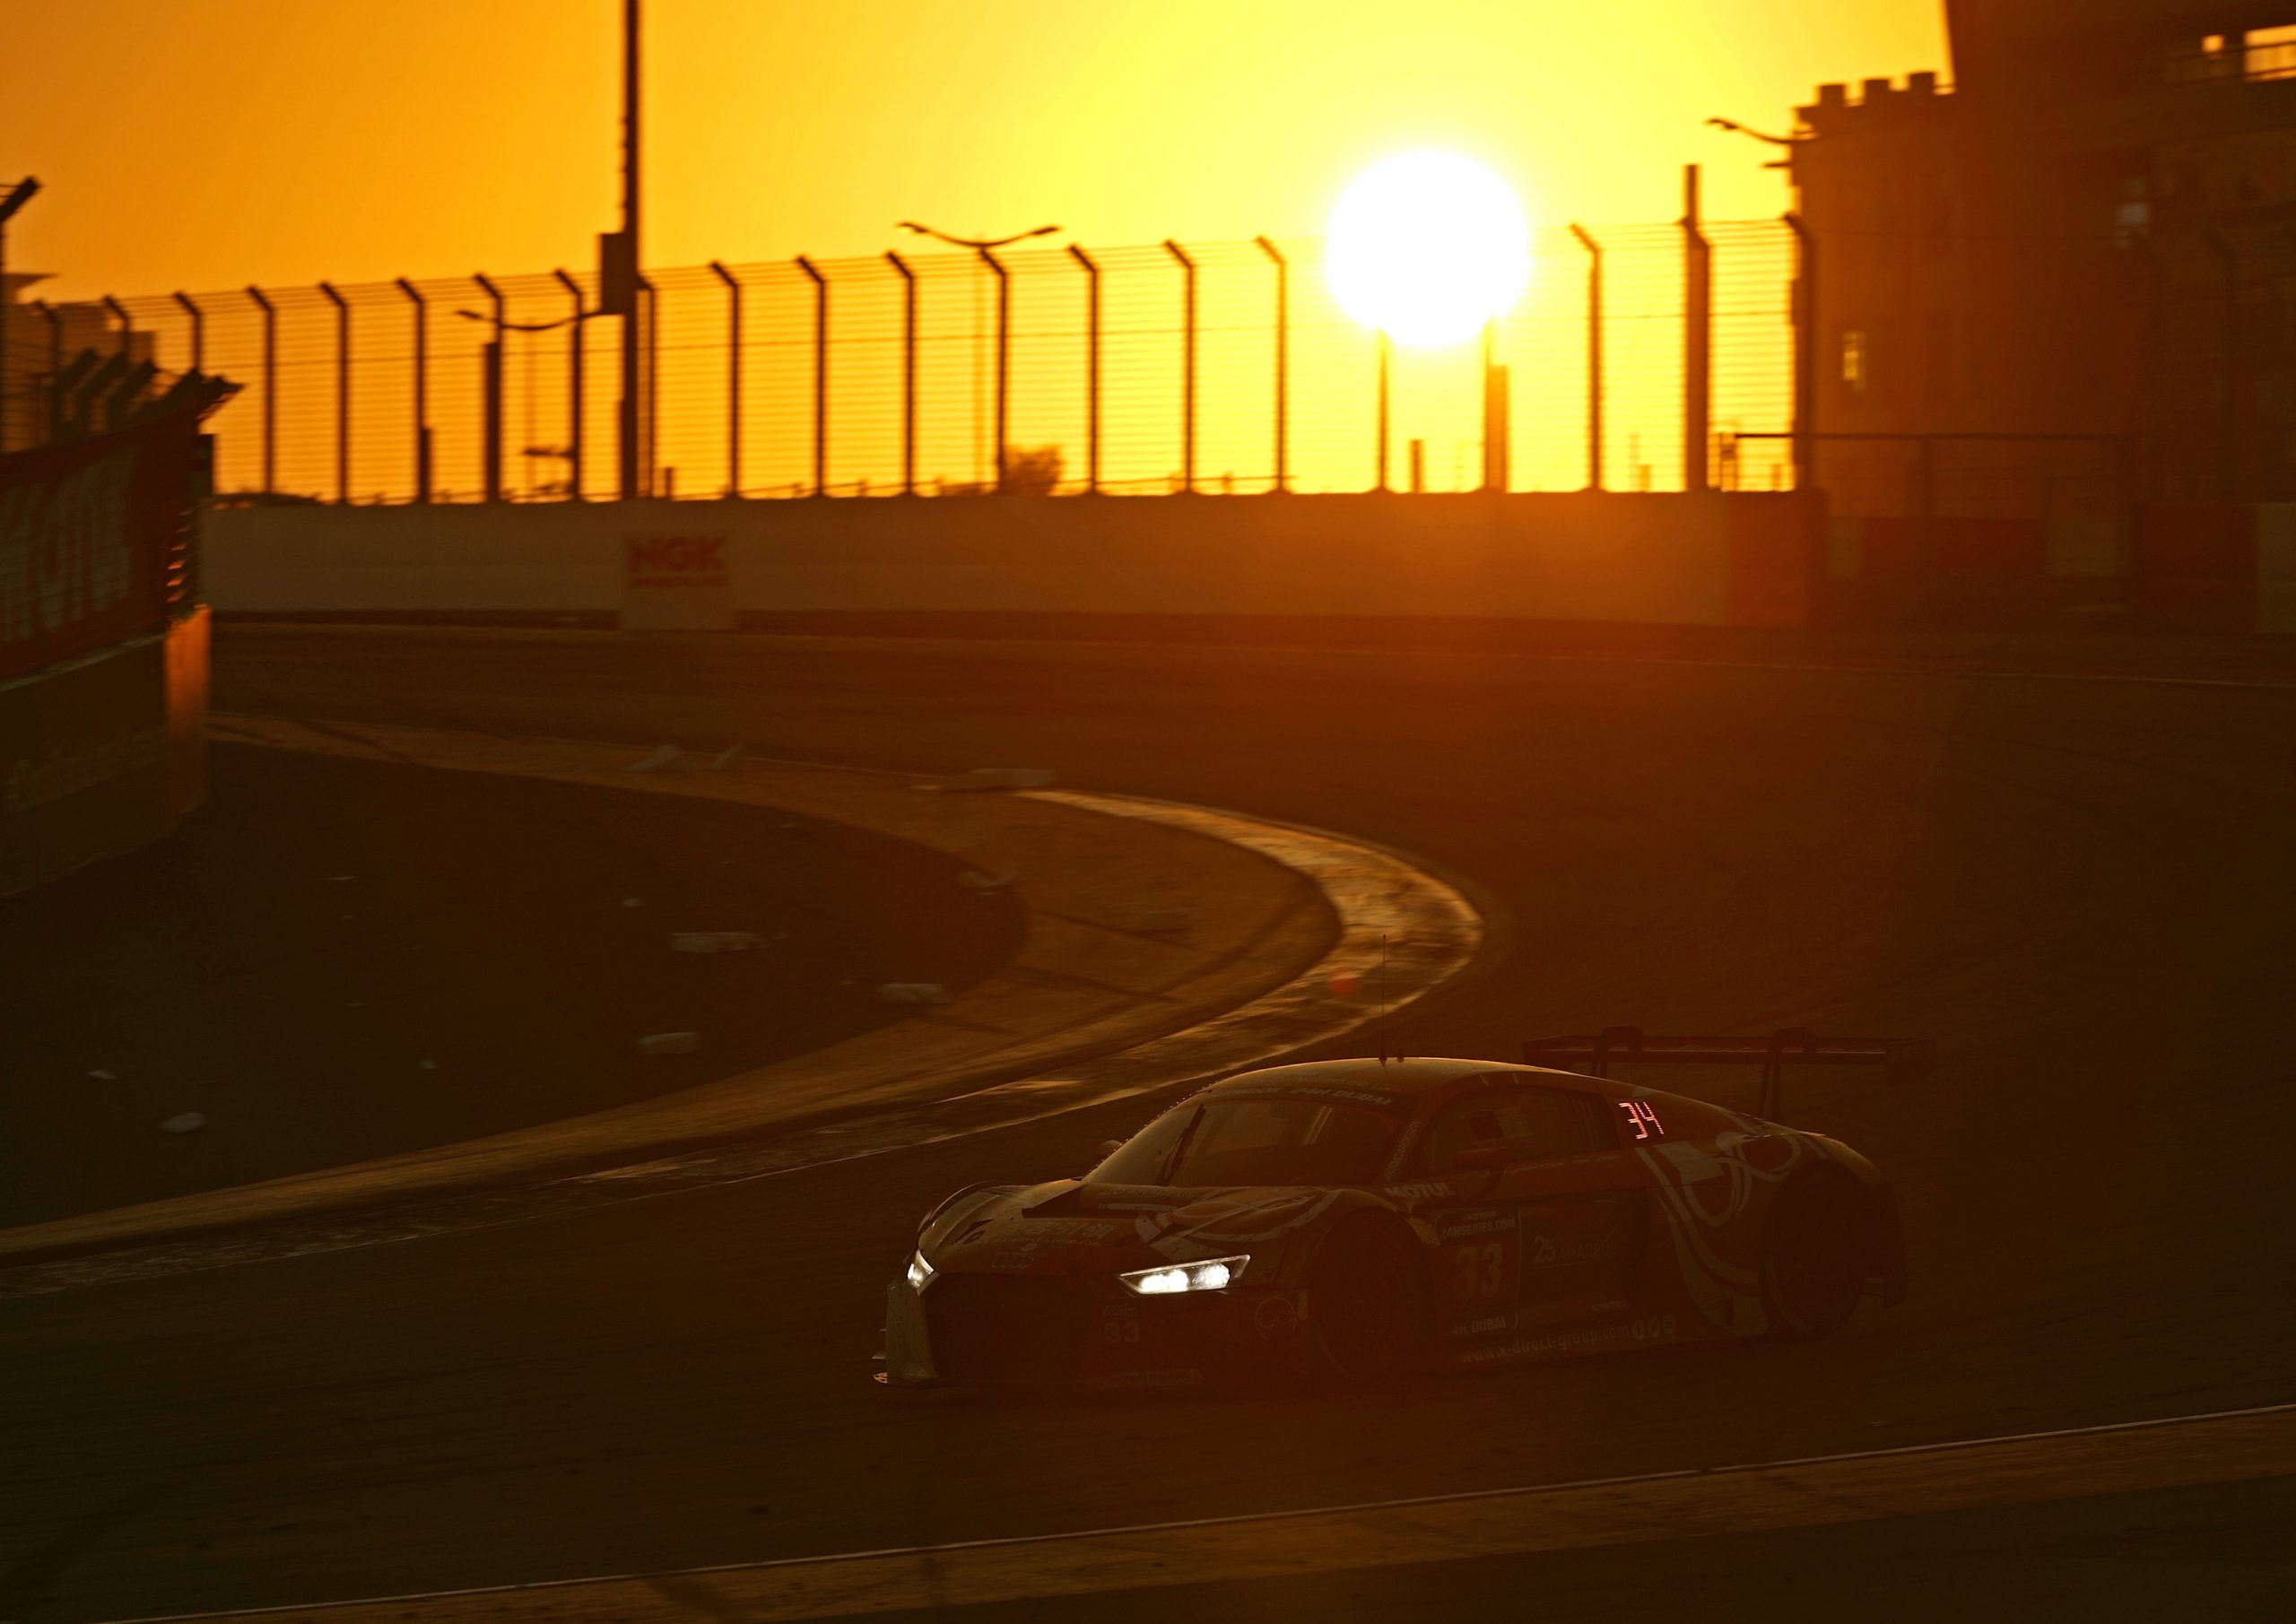 AUDI SPORT ENTERS 15 CARS IN HANKOOK 24 HOURS OF DUBAI